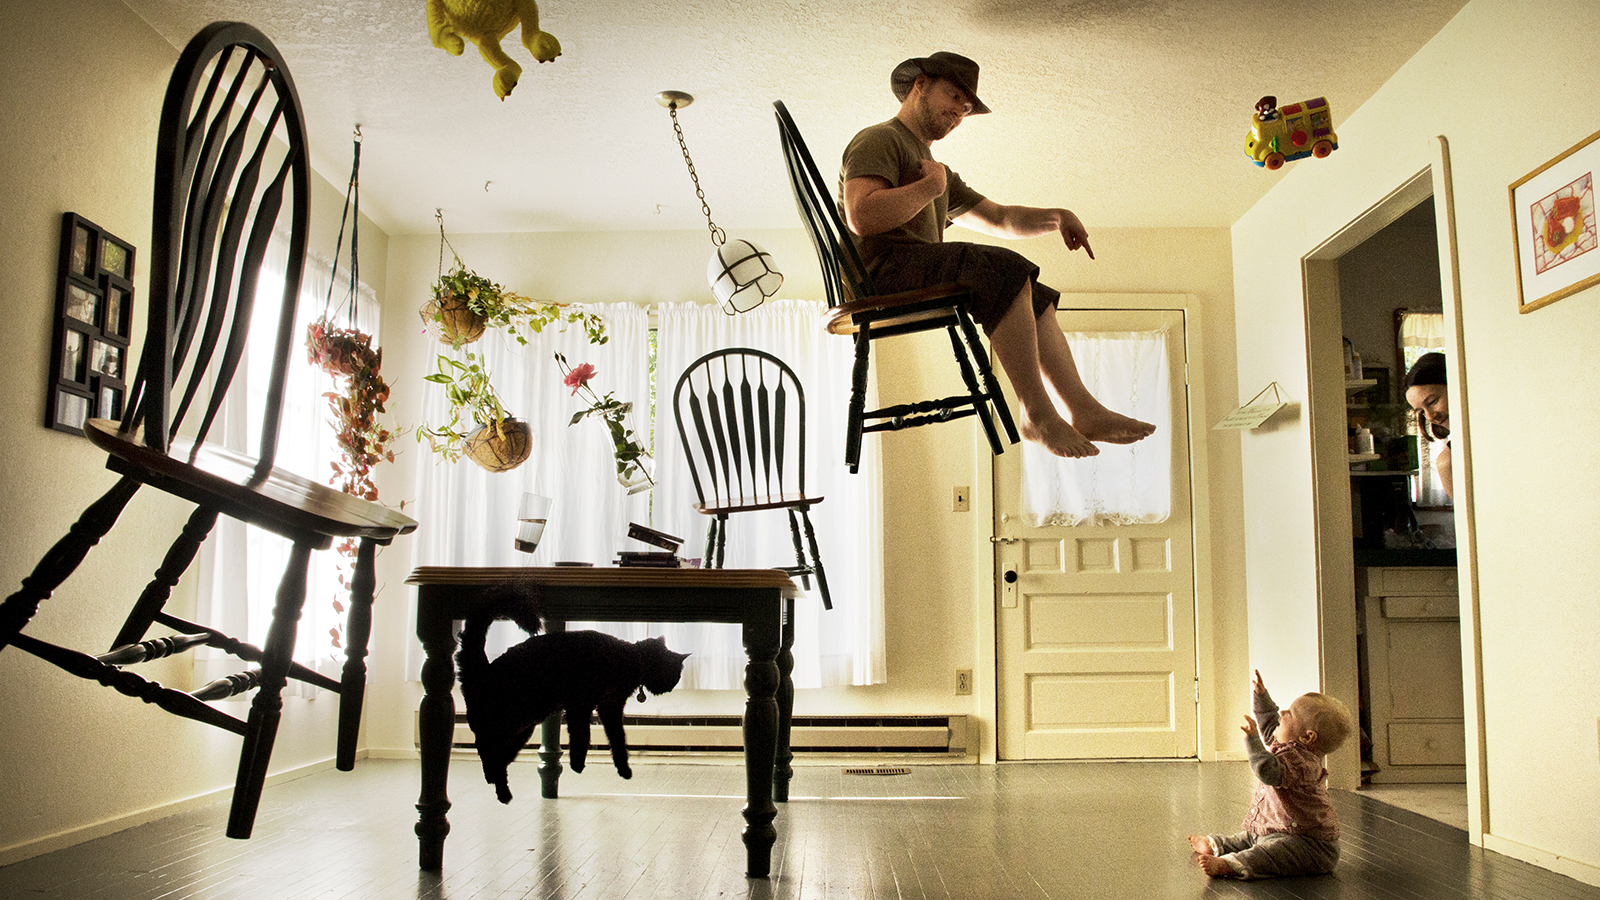 how to shoot and composite levitating objects creativelive